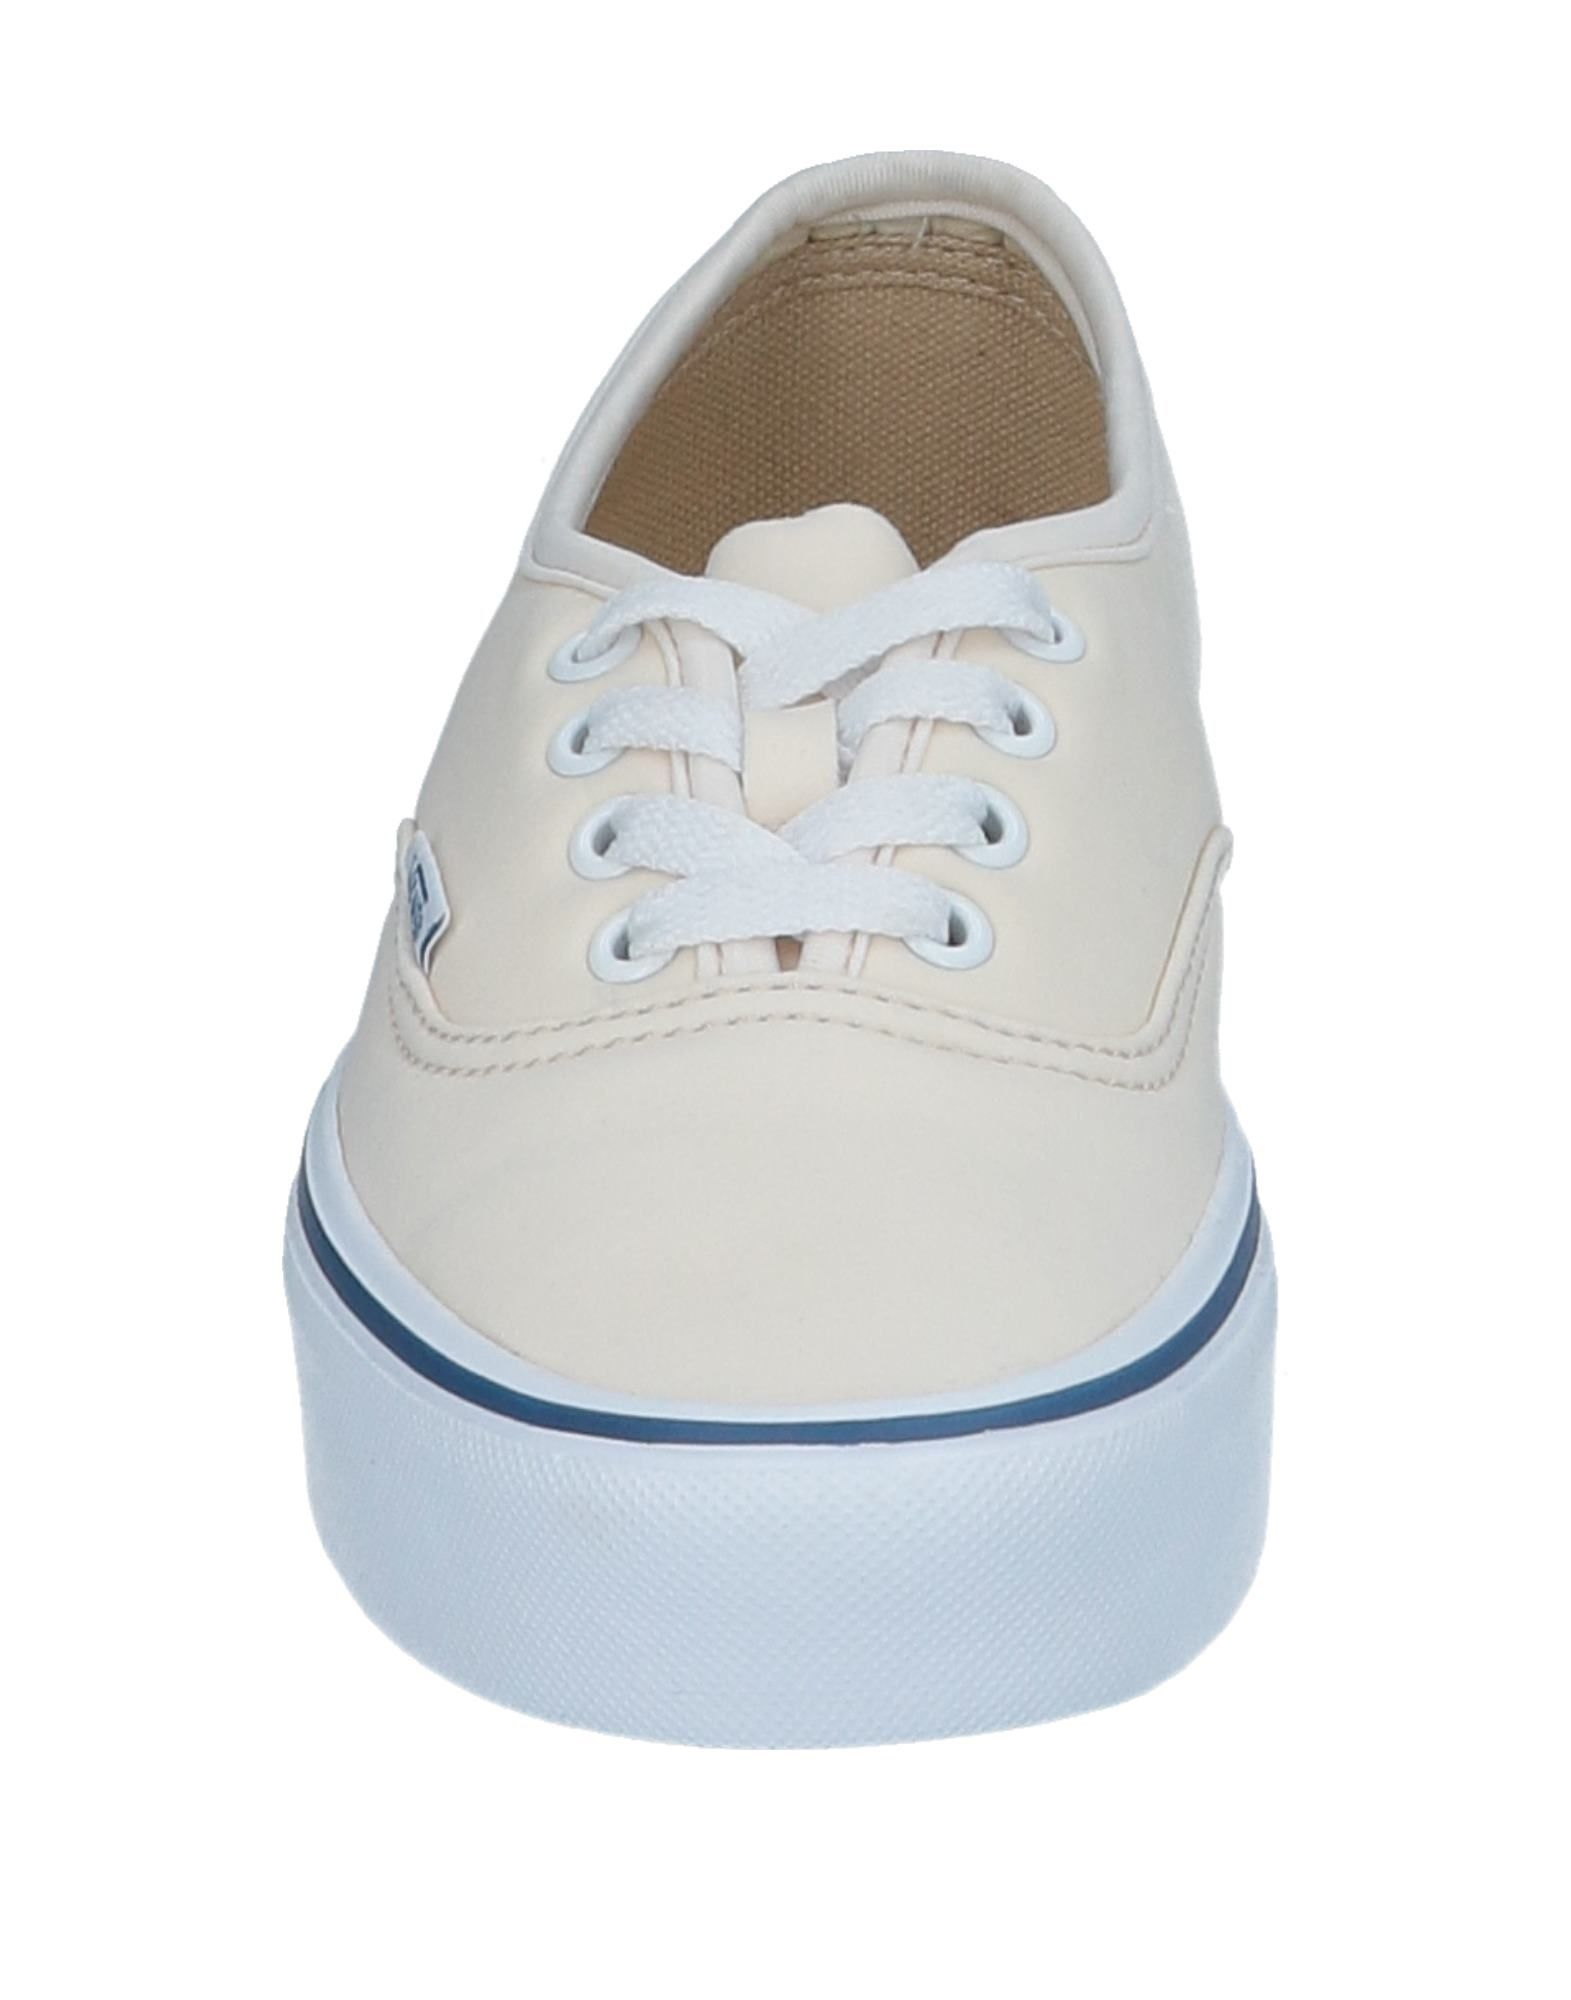 Vans Sneakers - Women Women Women Vans Sneakers online on  Canada - 11508256GN ea38fc